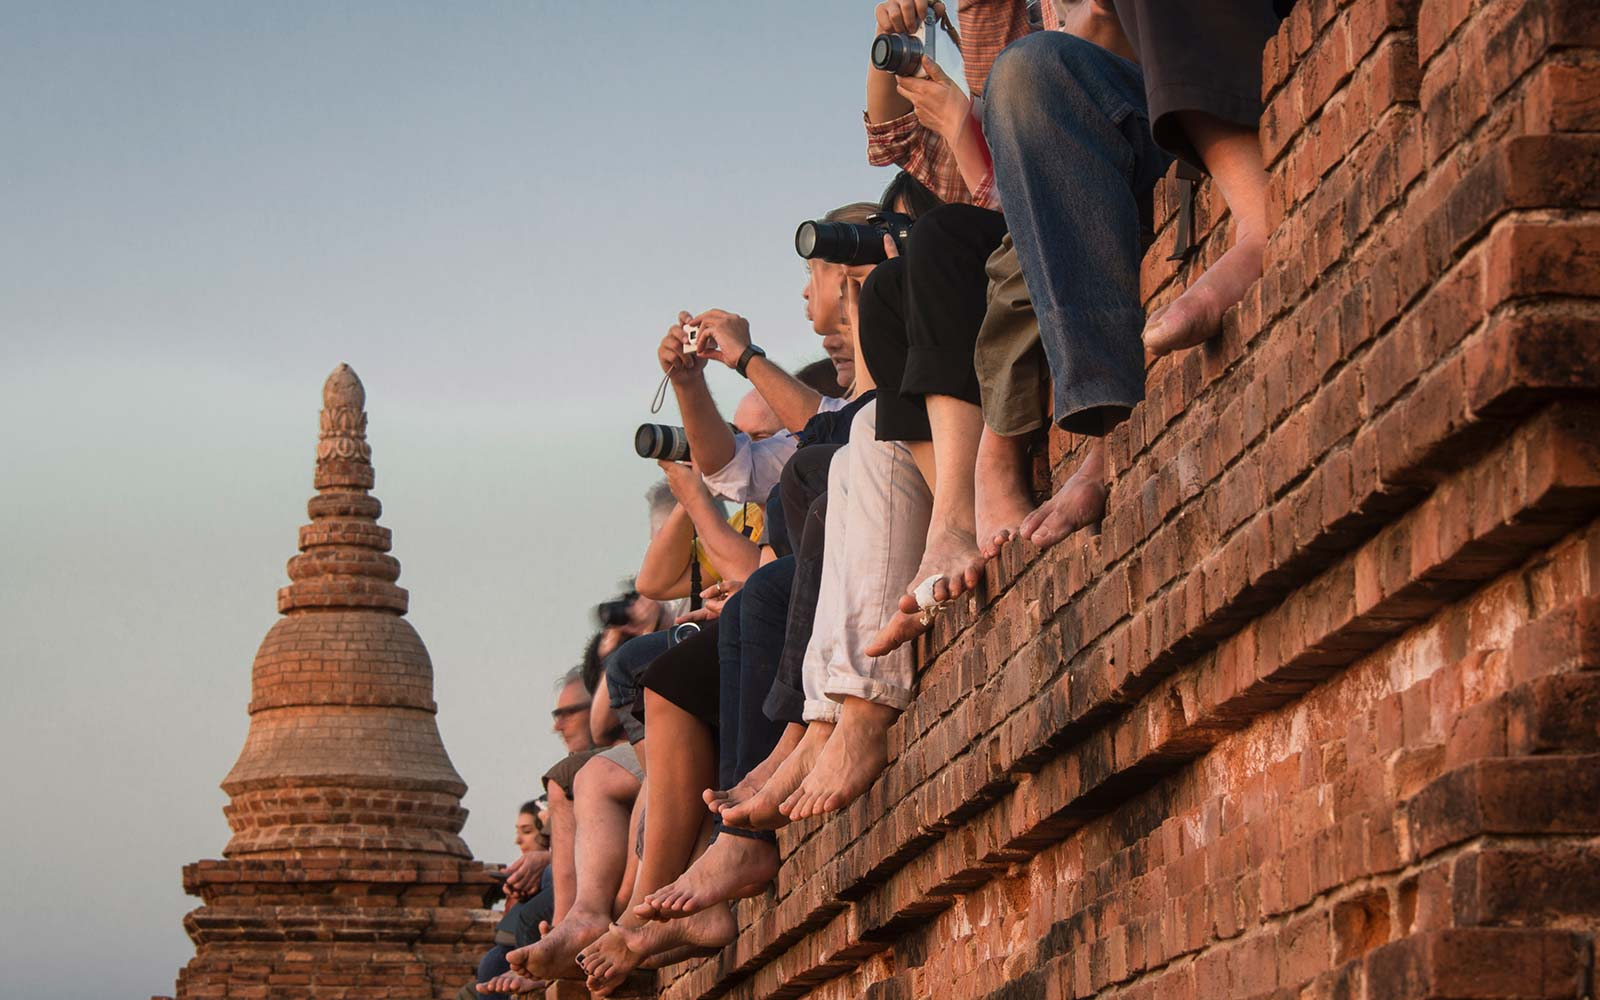 Bagan Myanmar Burma Pagoda Buddhist temples tourists taking photos